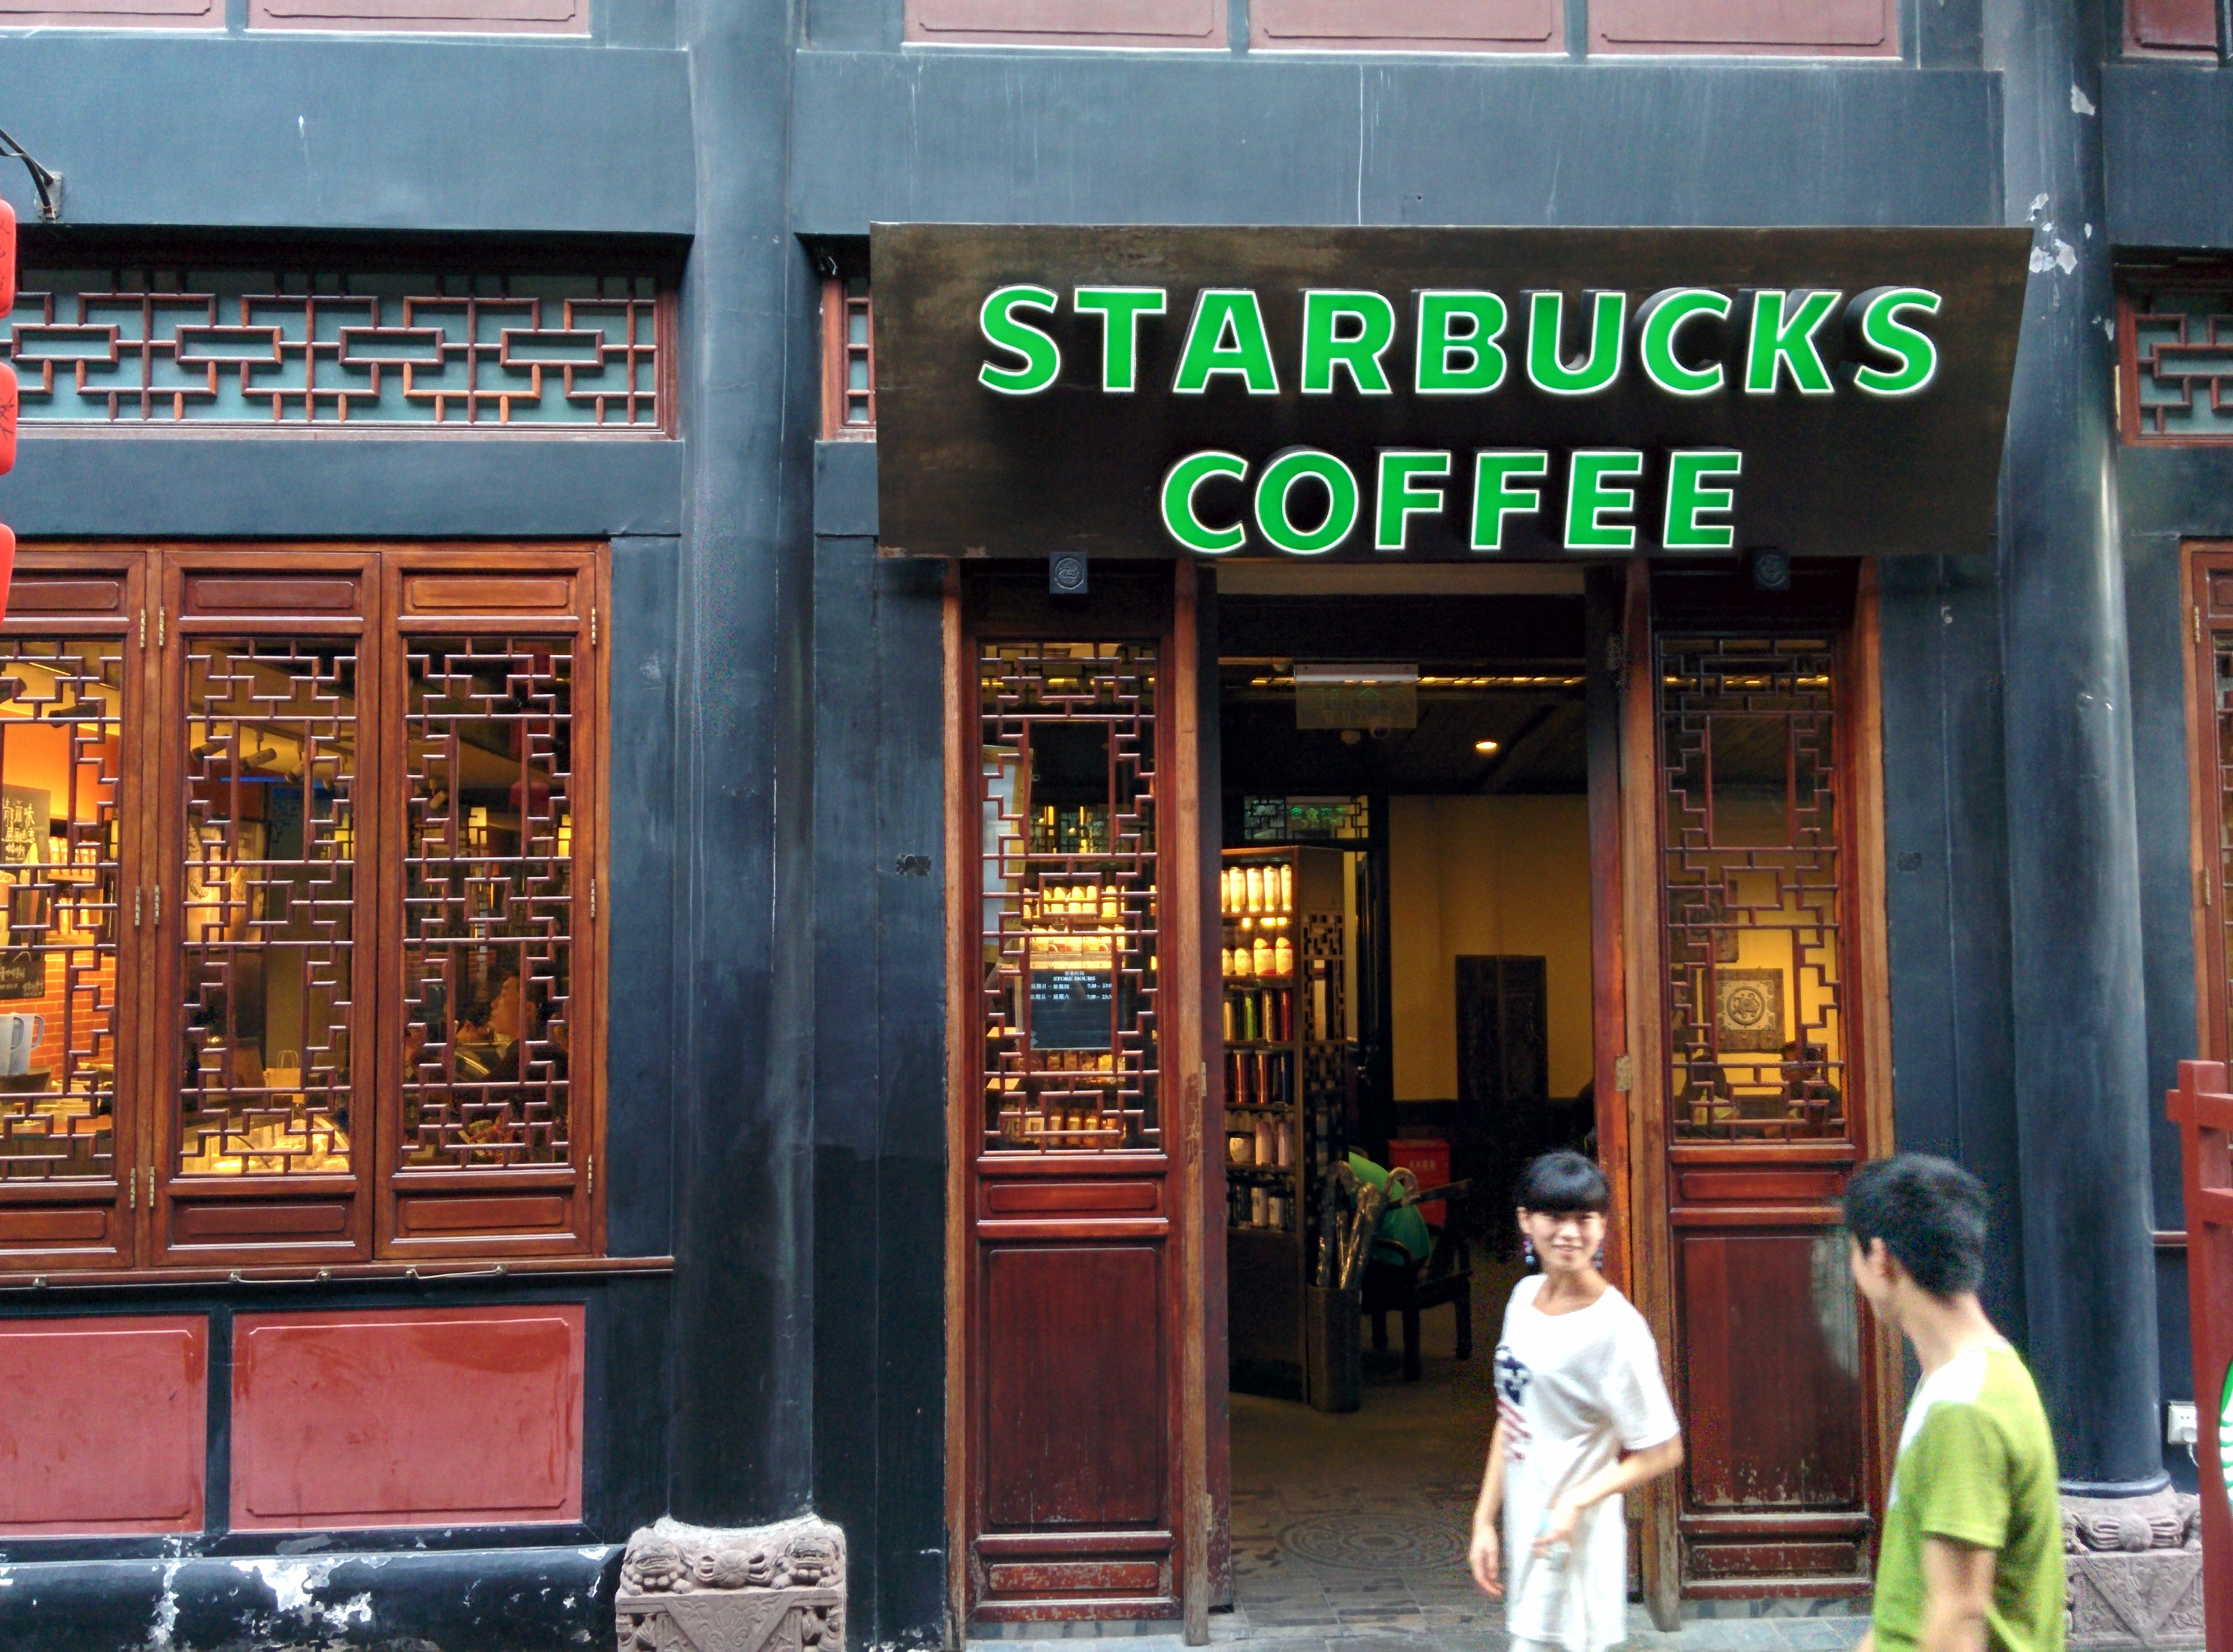 Even the Starbucks Coffee is nicely integrated into its historic building! Inside, you can find a mix of antique and modern furniture, including a very fancy outdoor courtyard.